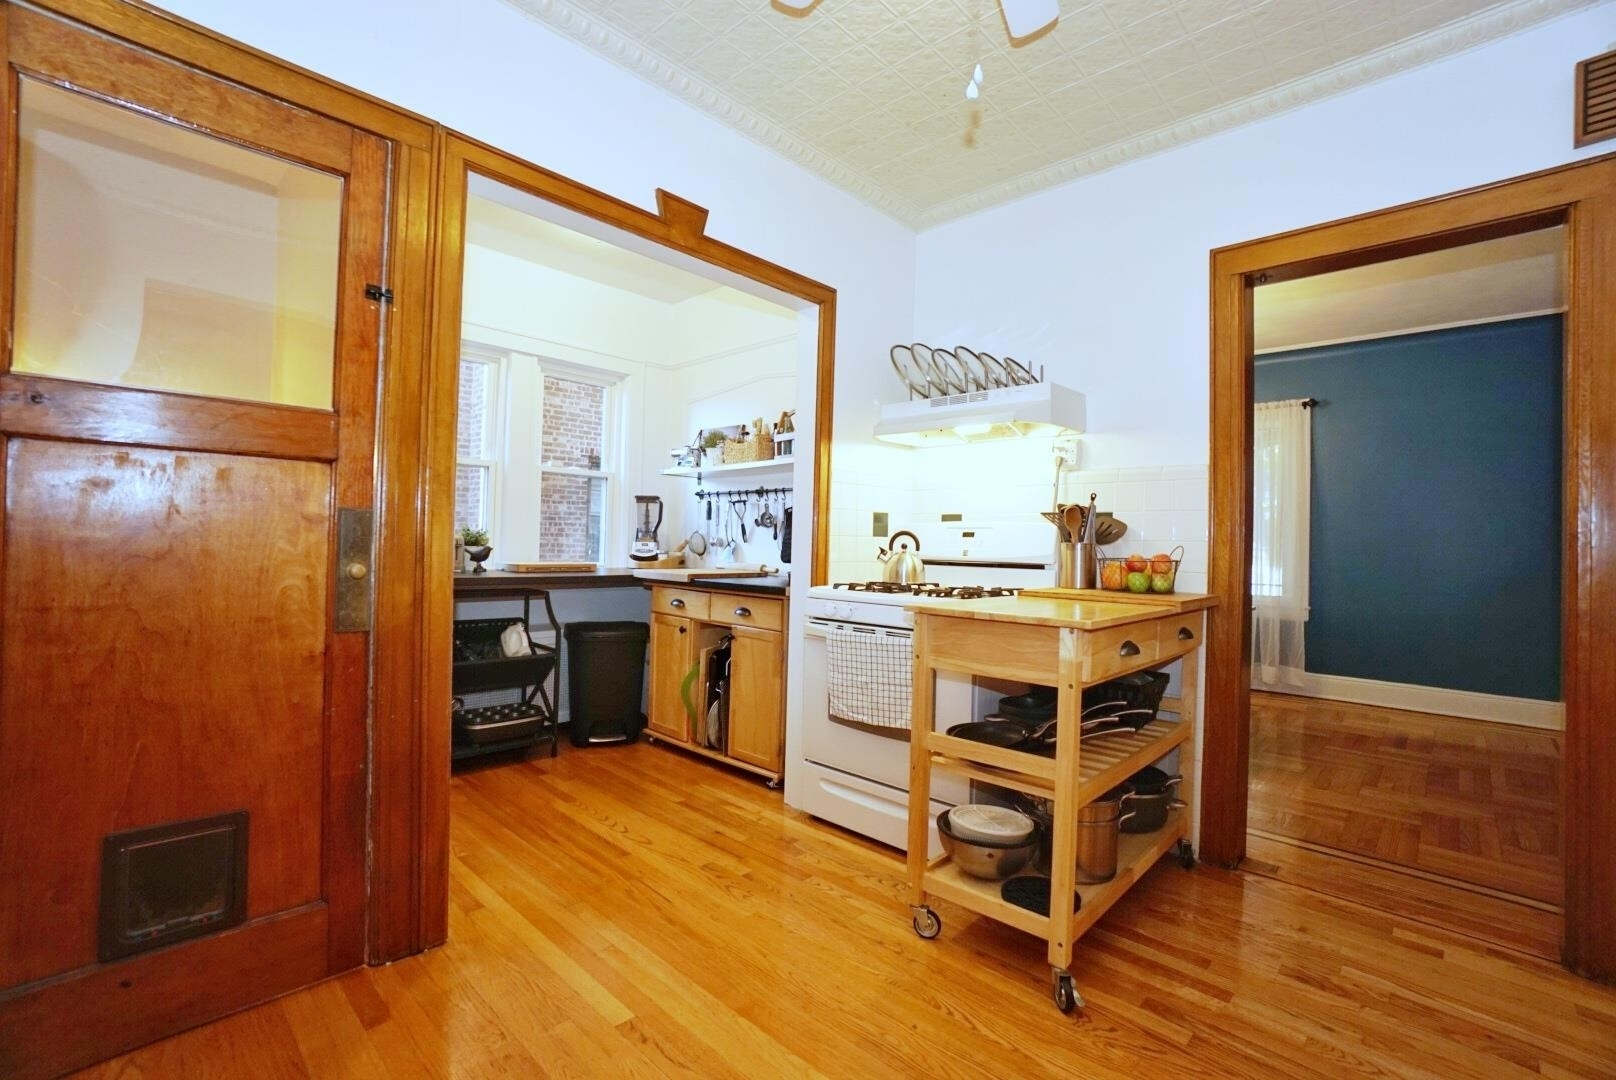 6. Single Family Townhouse for Sale at 1684 RYDER ST , TOWNHOUSE Marine Park, Brooklyn, NY 11234